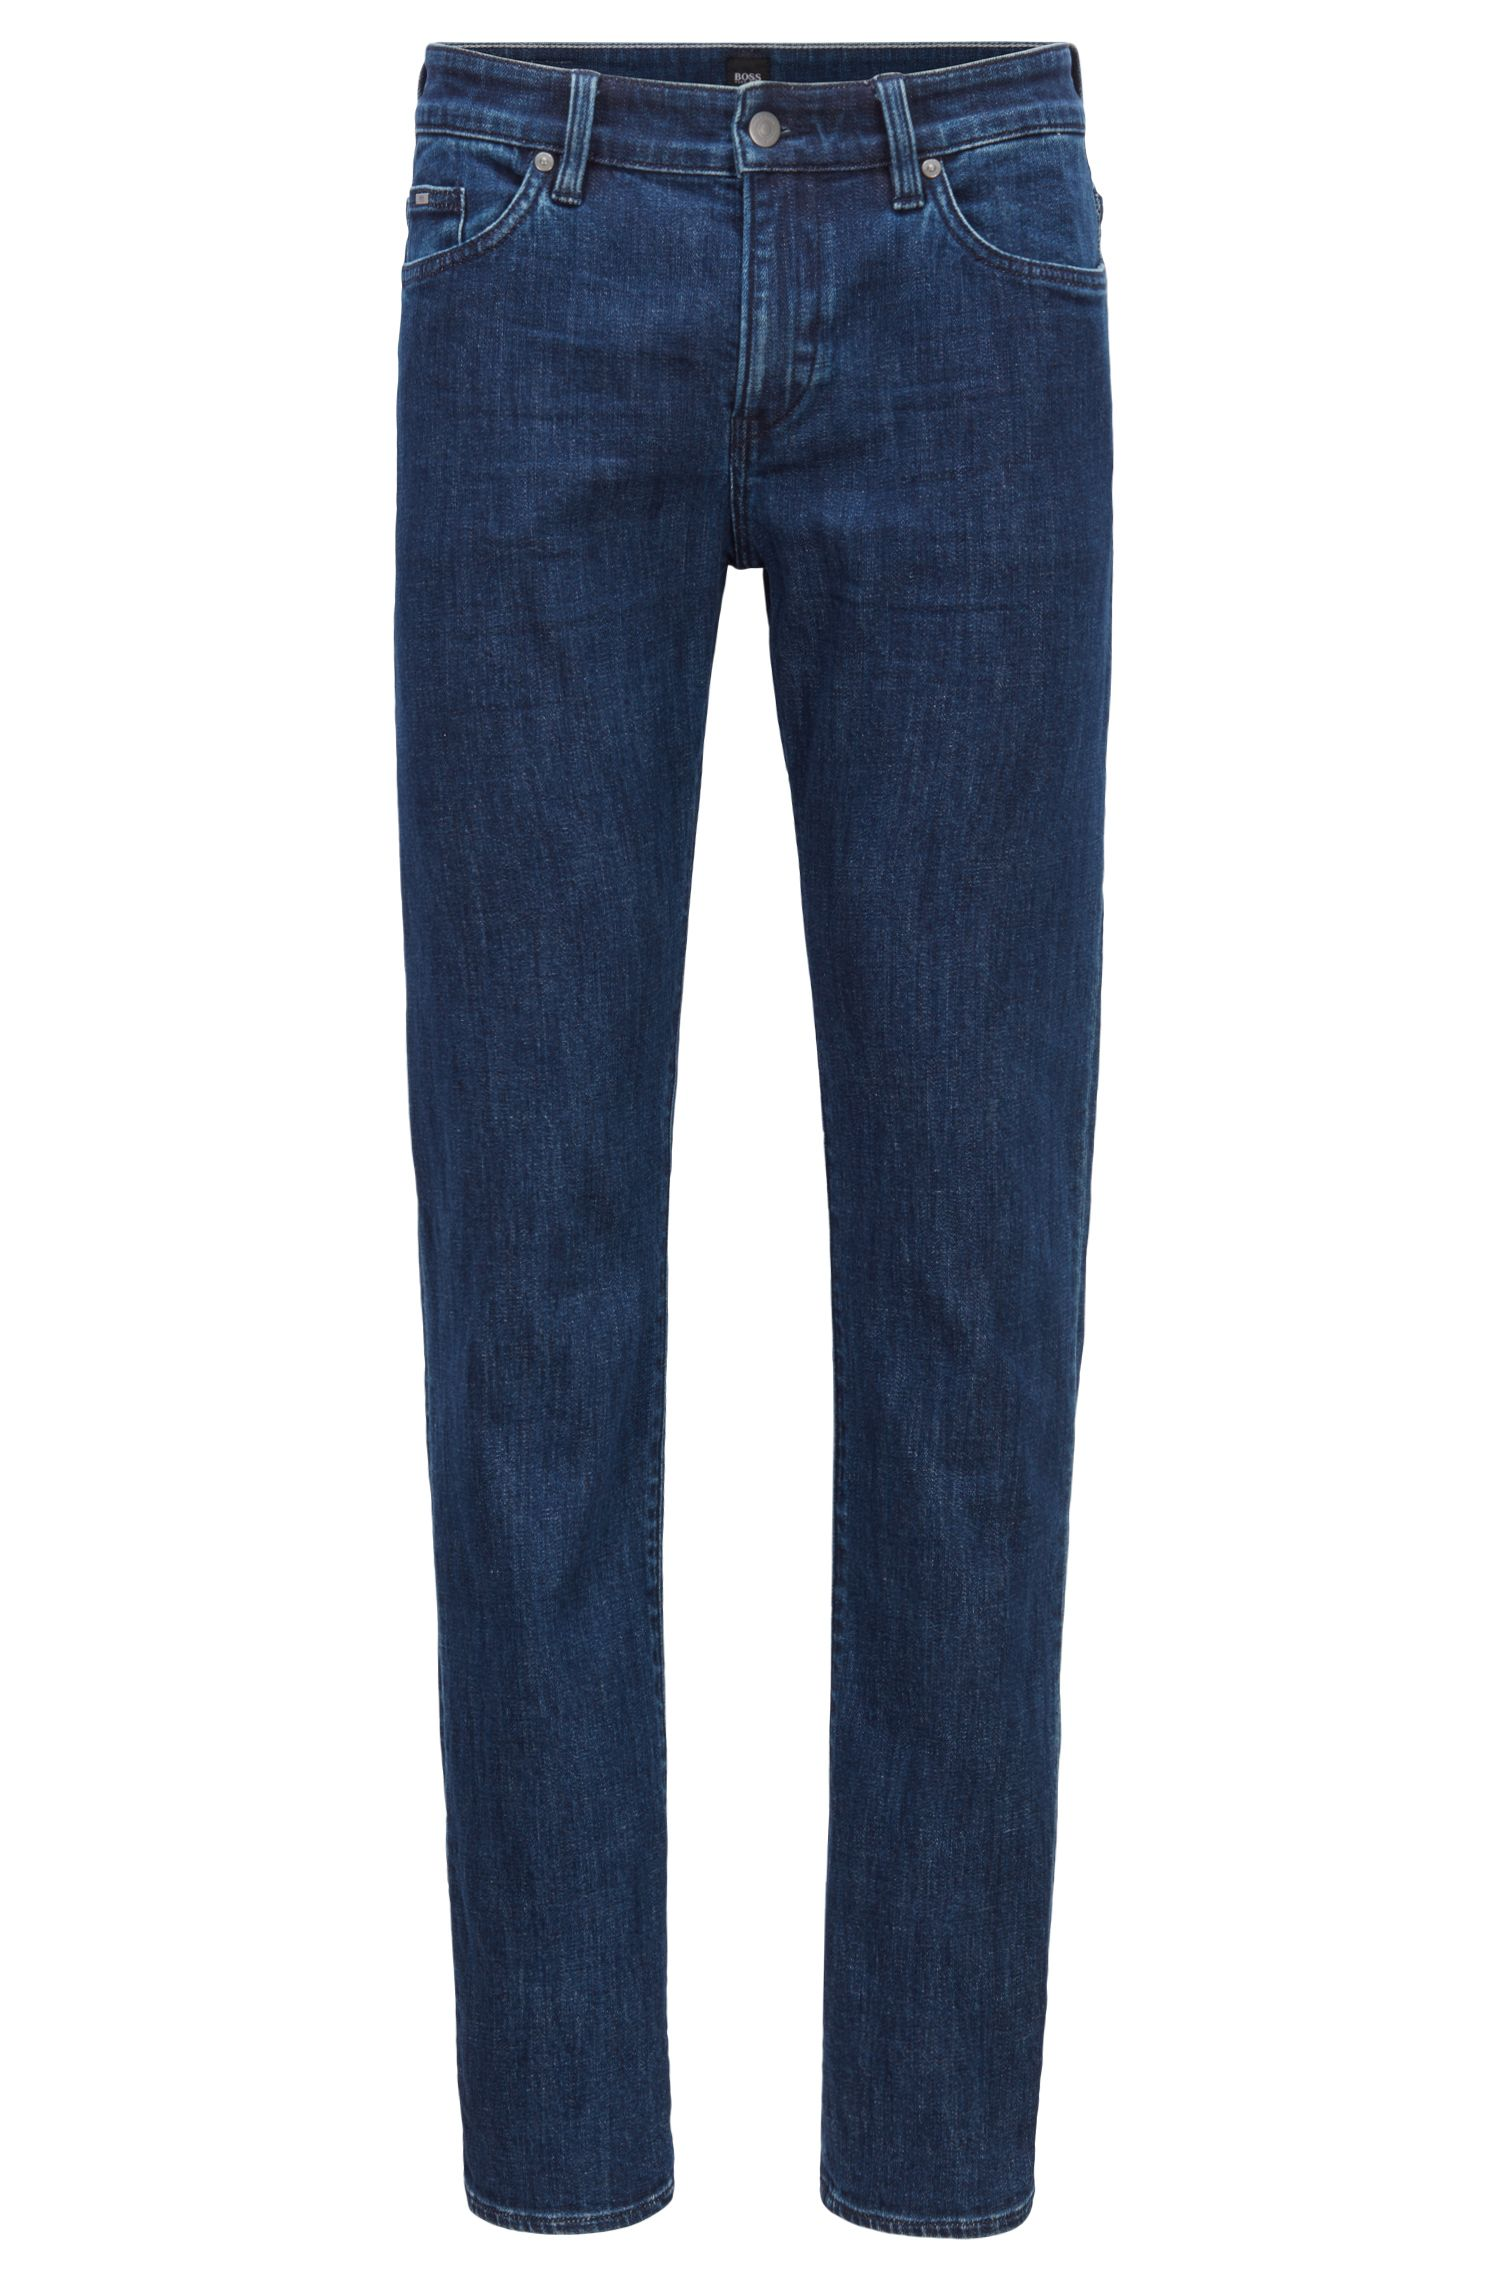 Jean Slim Fit en denim stretch bleu marine confortable, Bleu